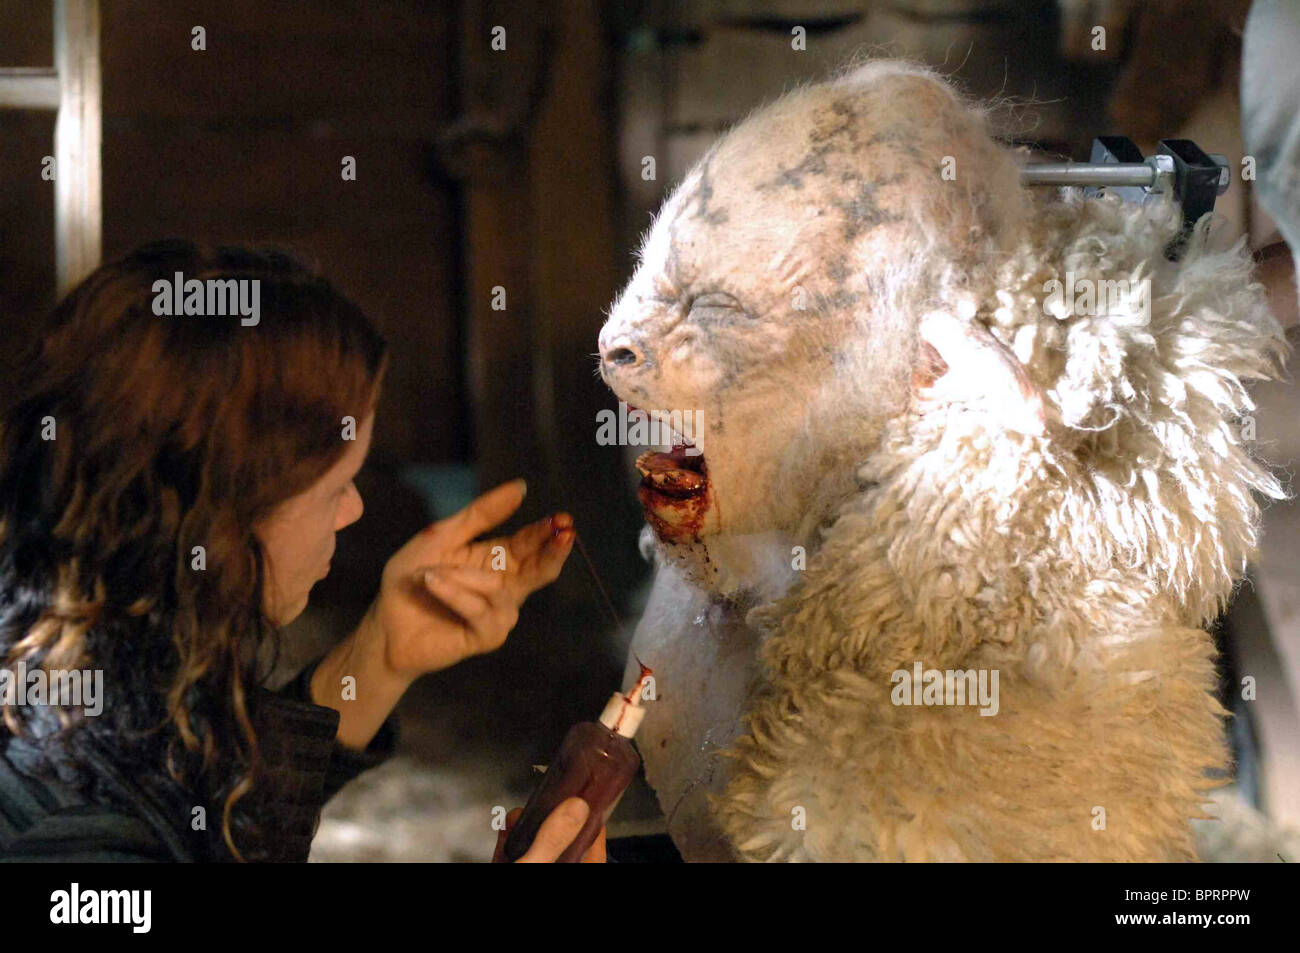 SPECIAL EFFECTS DEPT. BLACK SHEEP (2006) - Stock Image